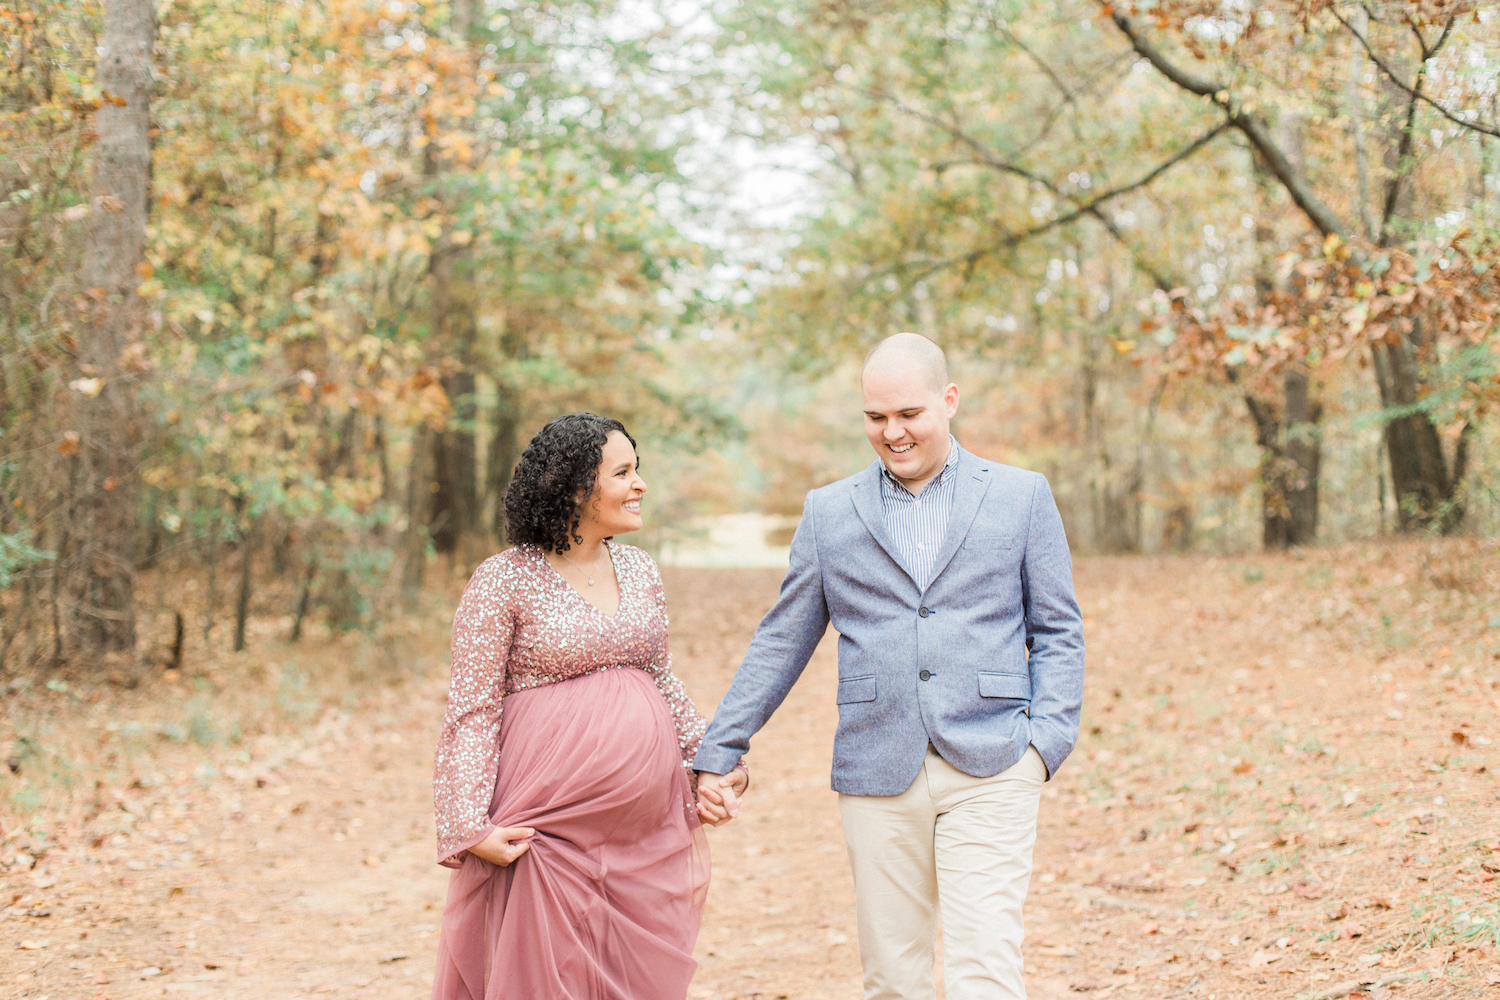 Romantic and joy filled fall maternity session wearing sparkly, tulle maternity dress from ASOS. Atlanta Fine Art Maternity Photographer.